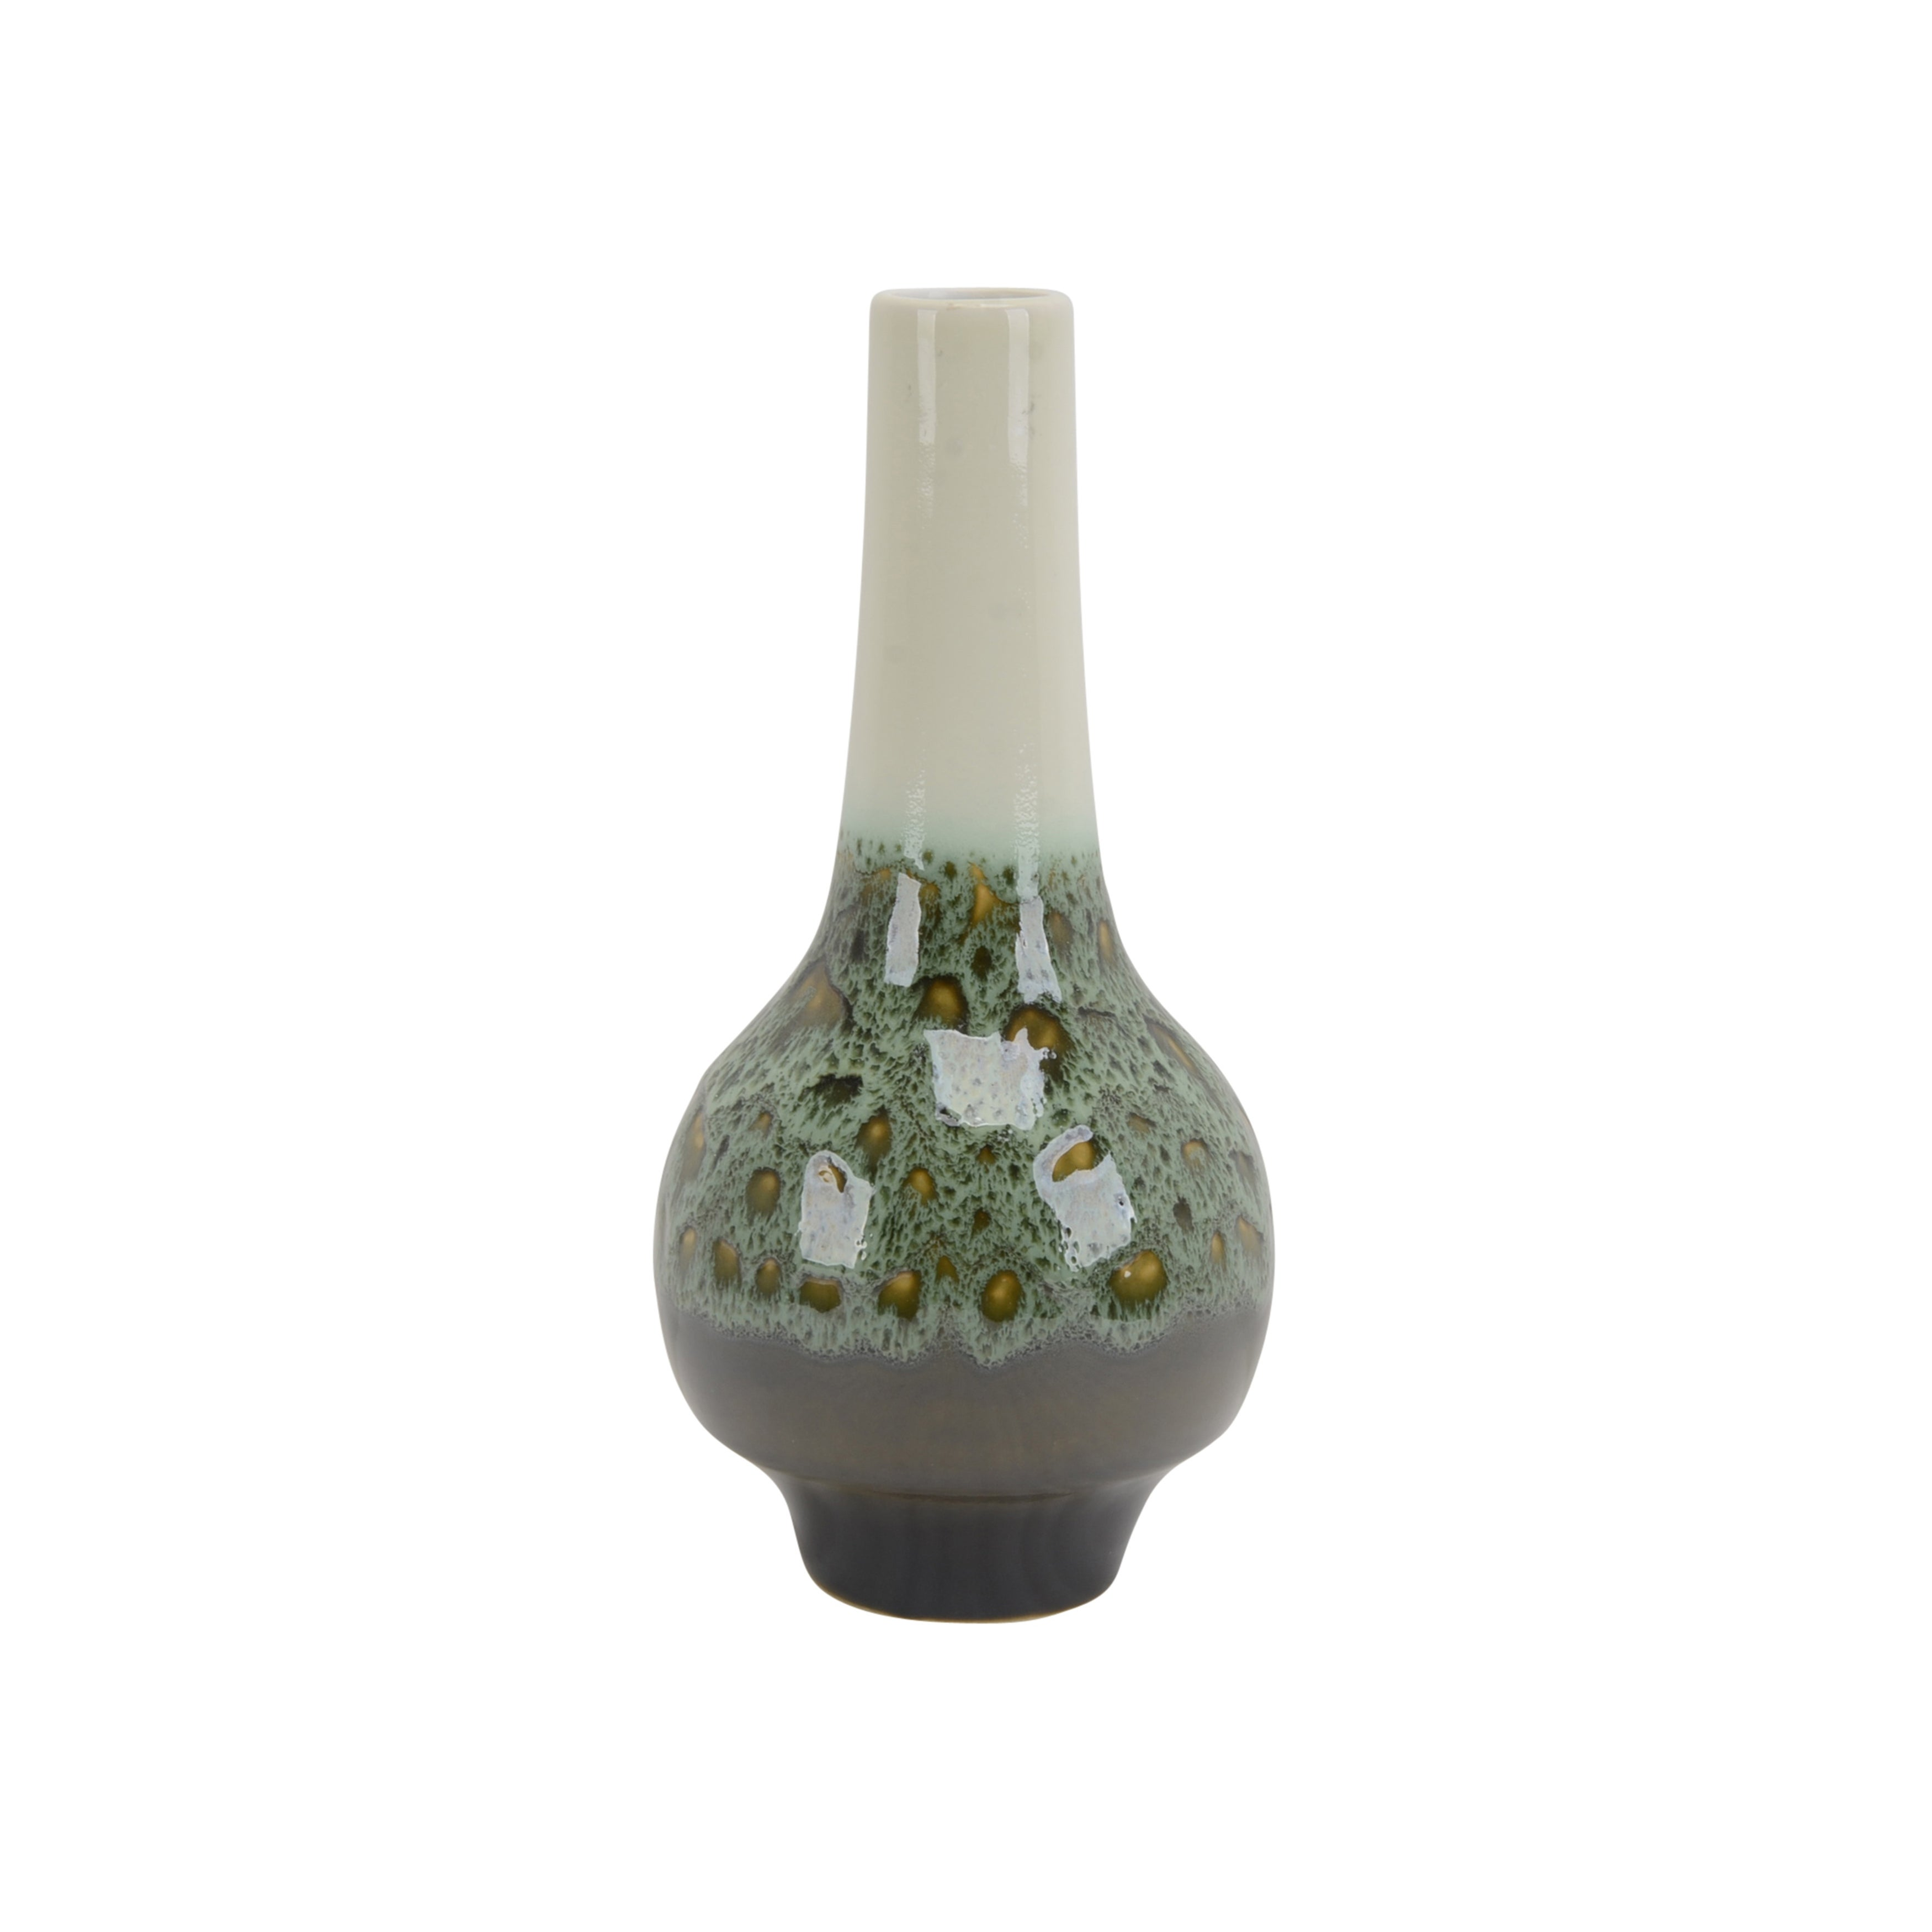 Contemporary Ceramic Bottle Vase with Elongated Neck, Multicolor